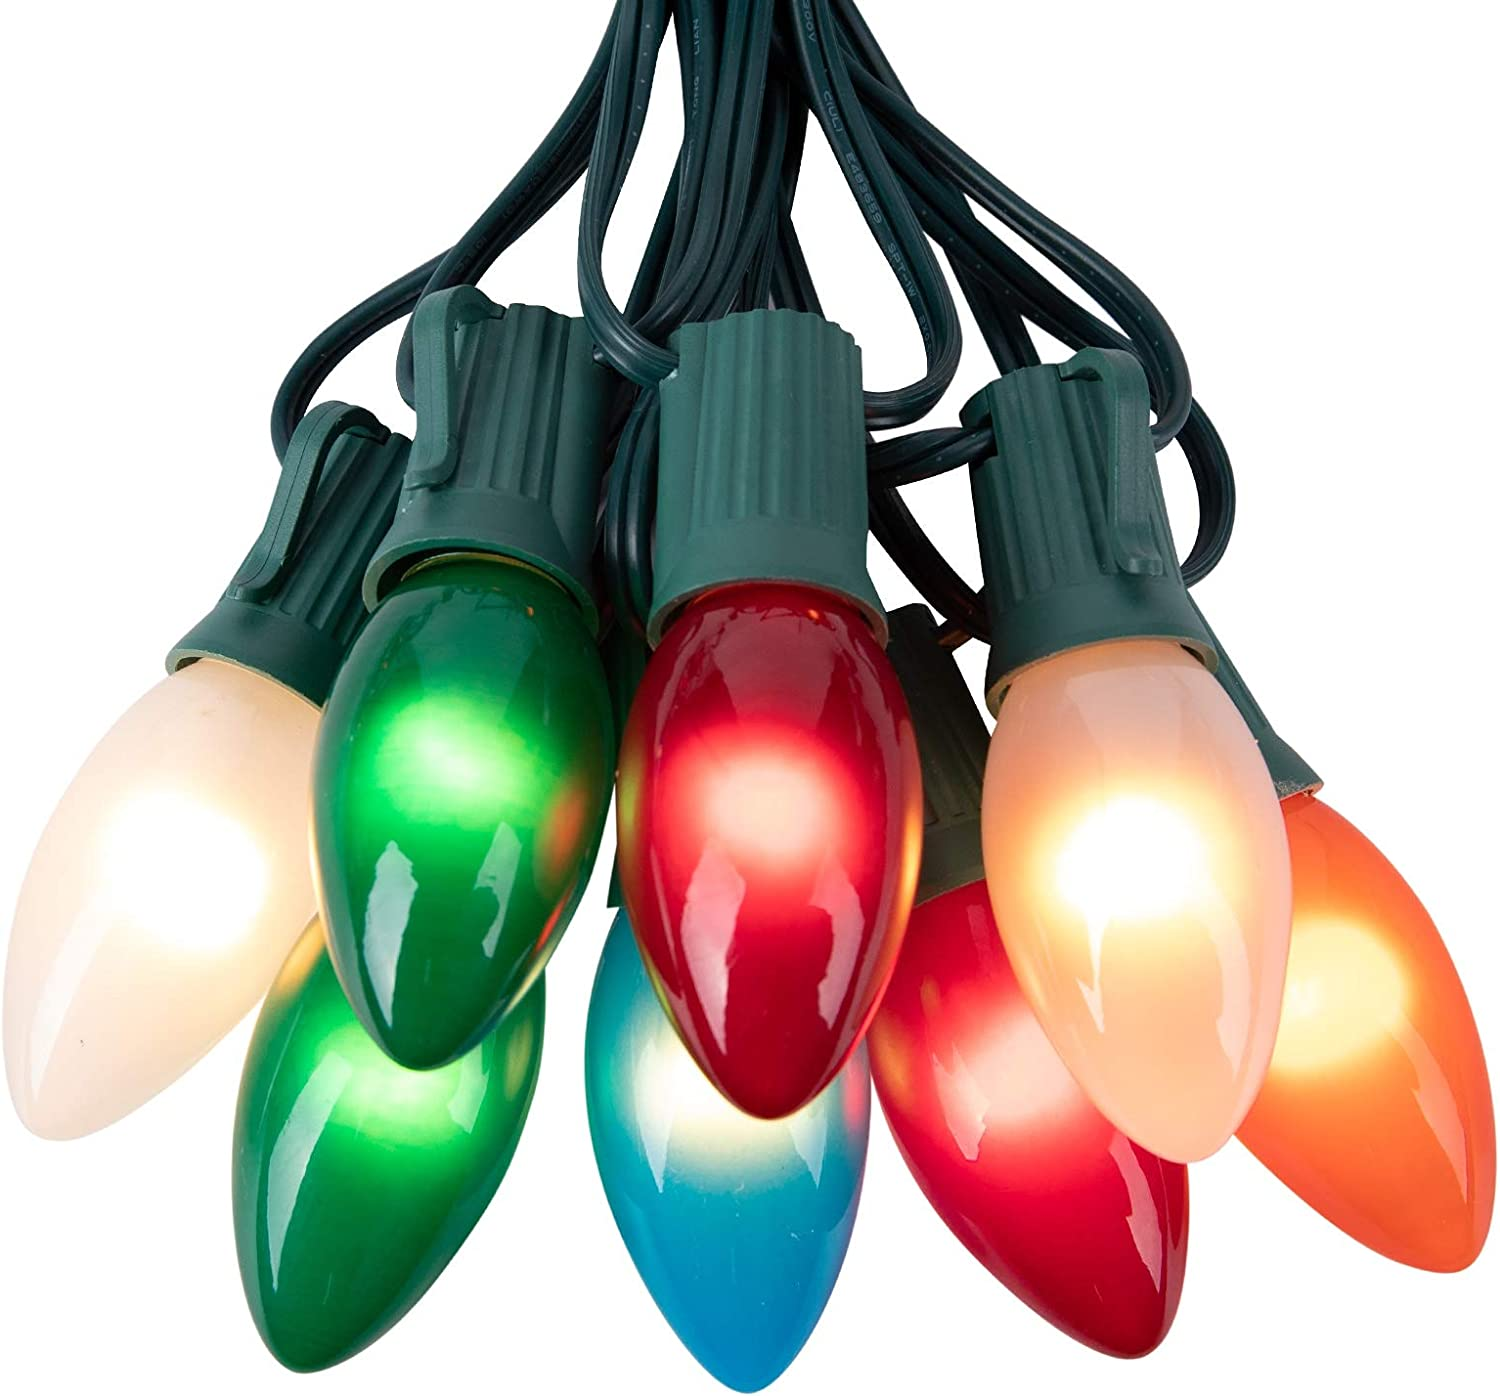 Ceramic Multicolor Christmas Lights, C9 25 Feet Vintage Incandescent Lights with Opaque Bulbs for Patio Fence Roofline Outdoor Indoor Holiday Decorations, 25 Bulbs with 2 Spare